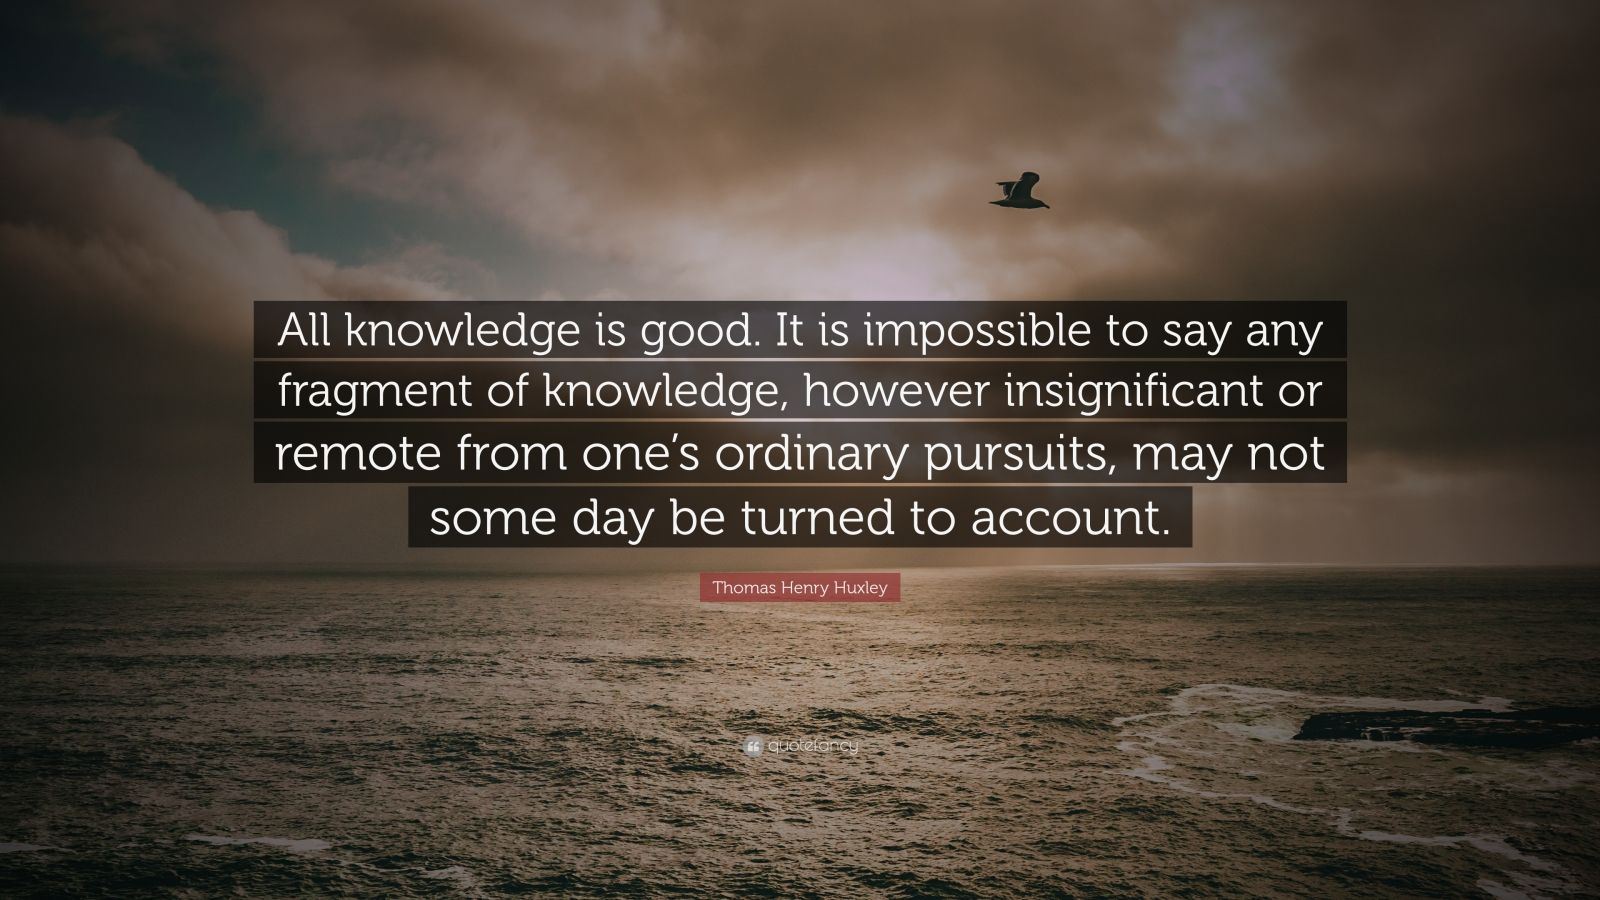 "Thomas Henry Huxley Quote: ""All knowledge is good. It is impossible to say any fragment of knowledge, however insignificant or remote from one's ordinary pursuits, may not some day be turned to account."""